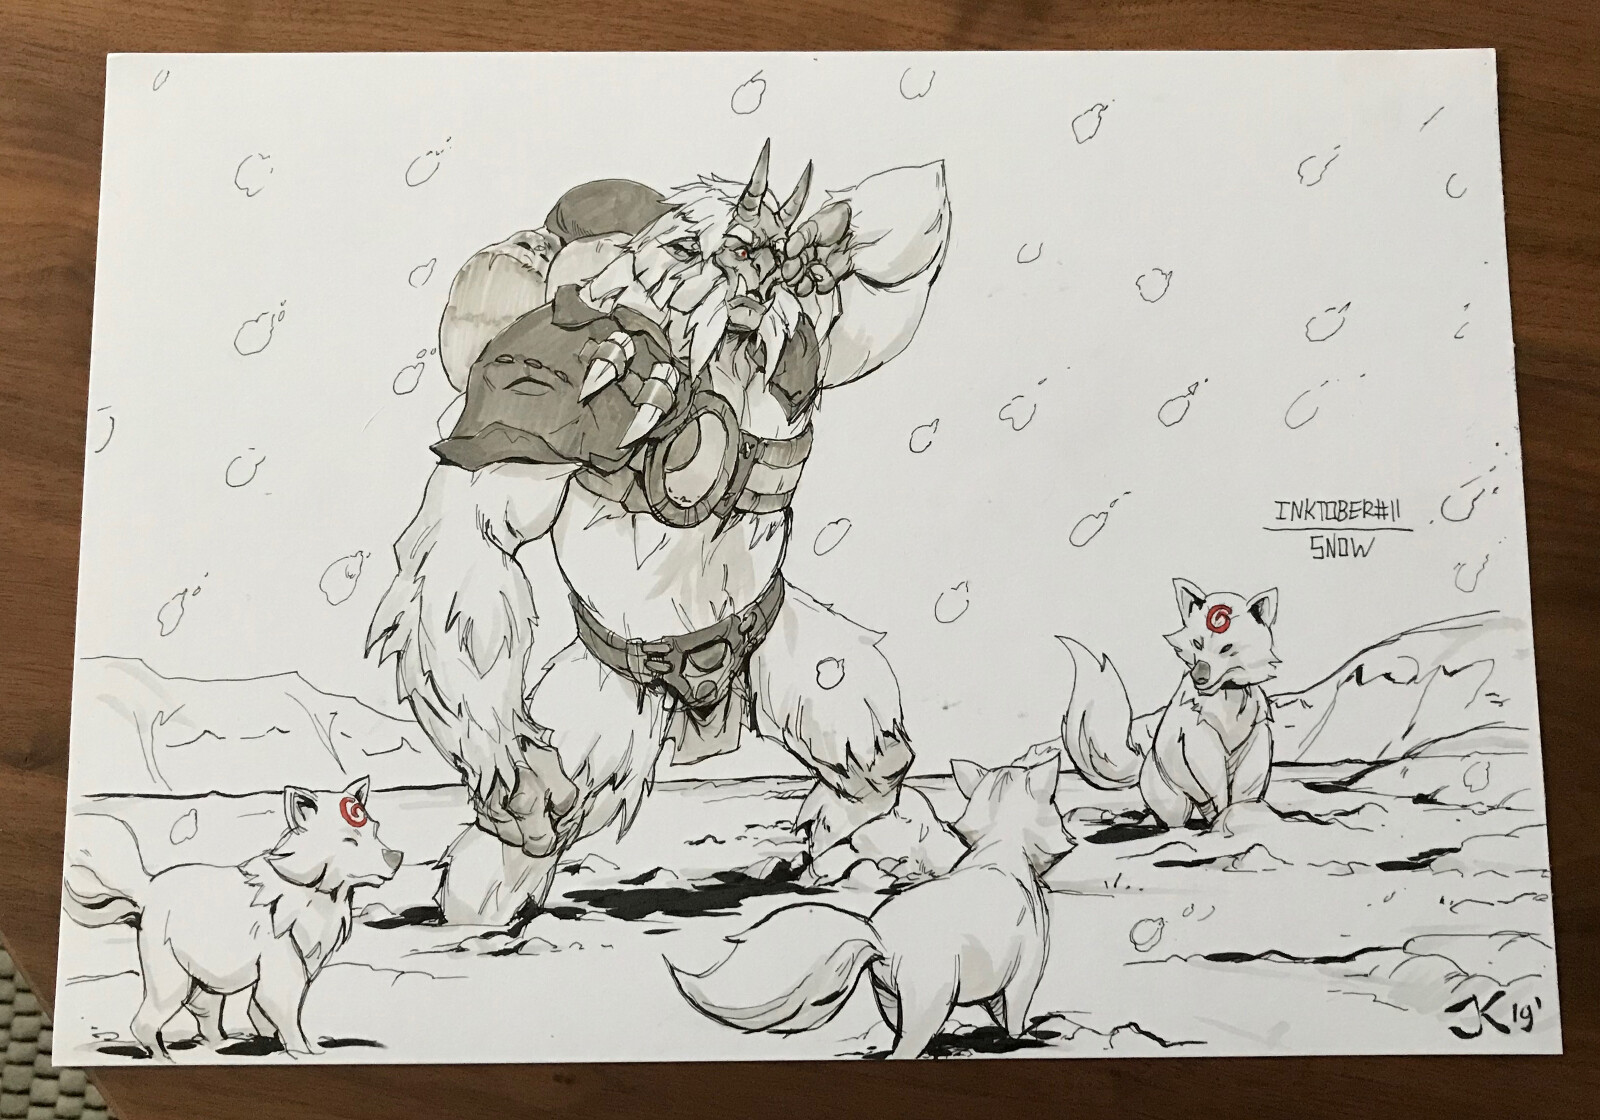 Jordy knoop day11 snow inktober2019 lr 2